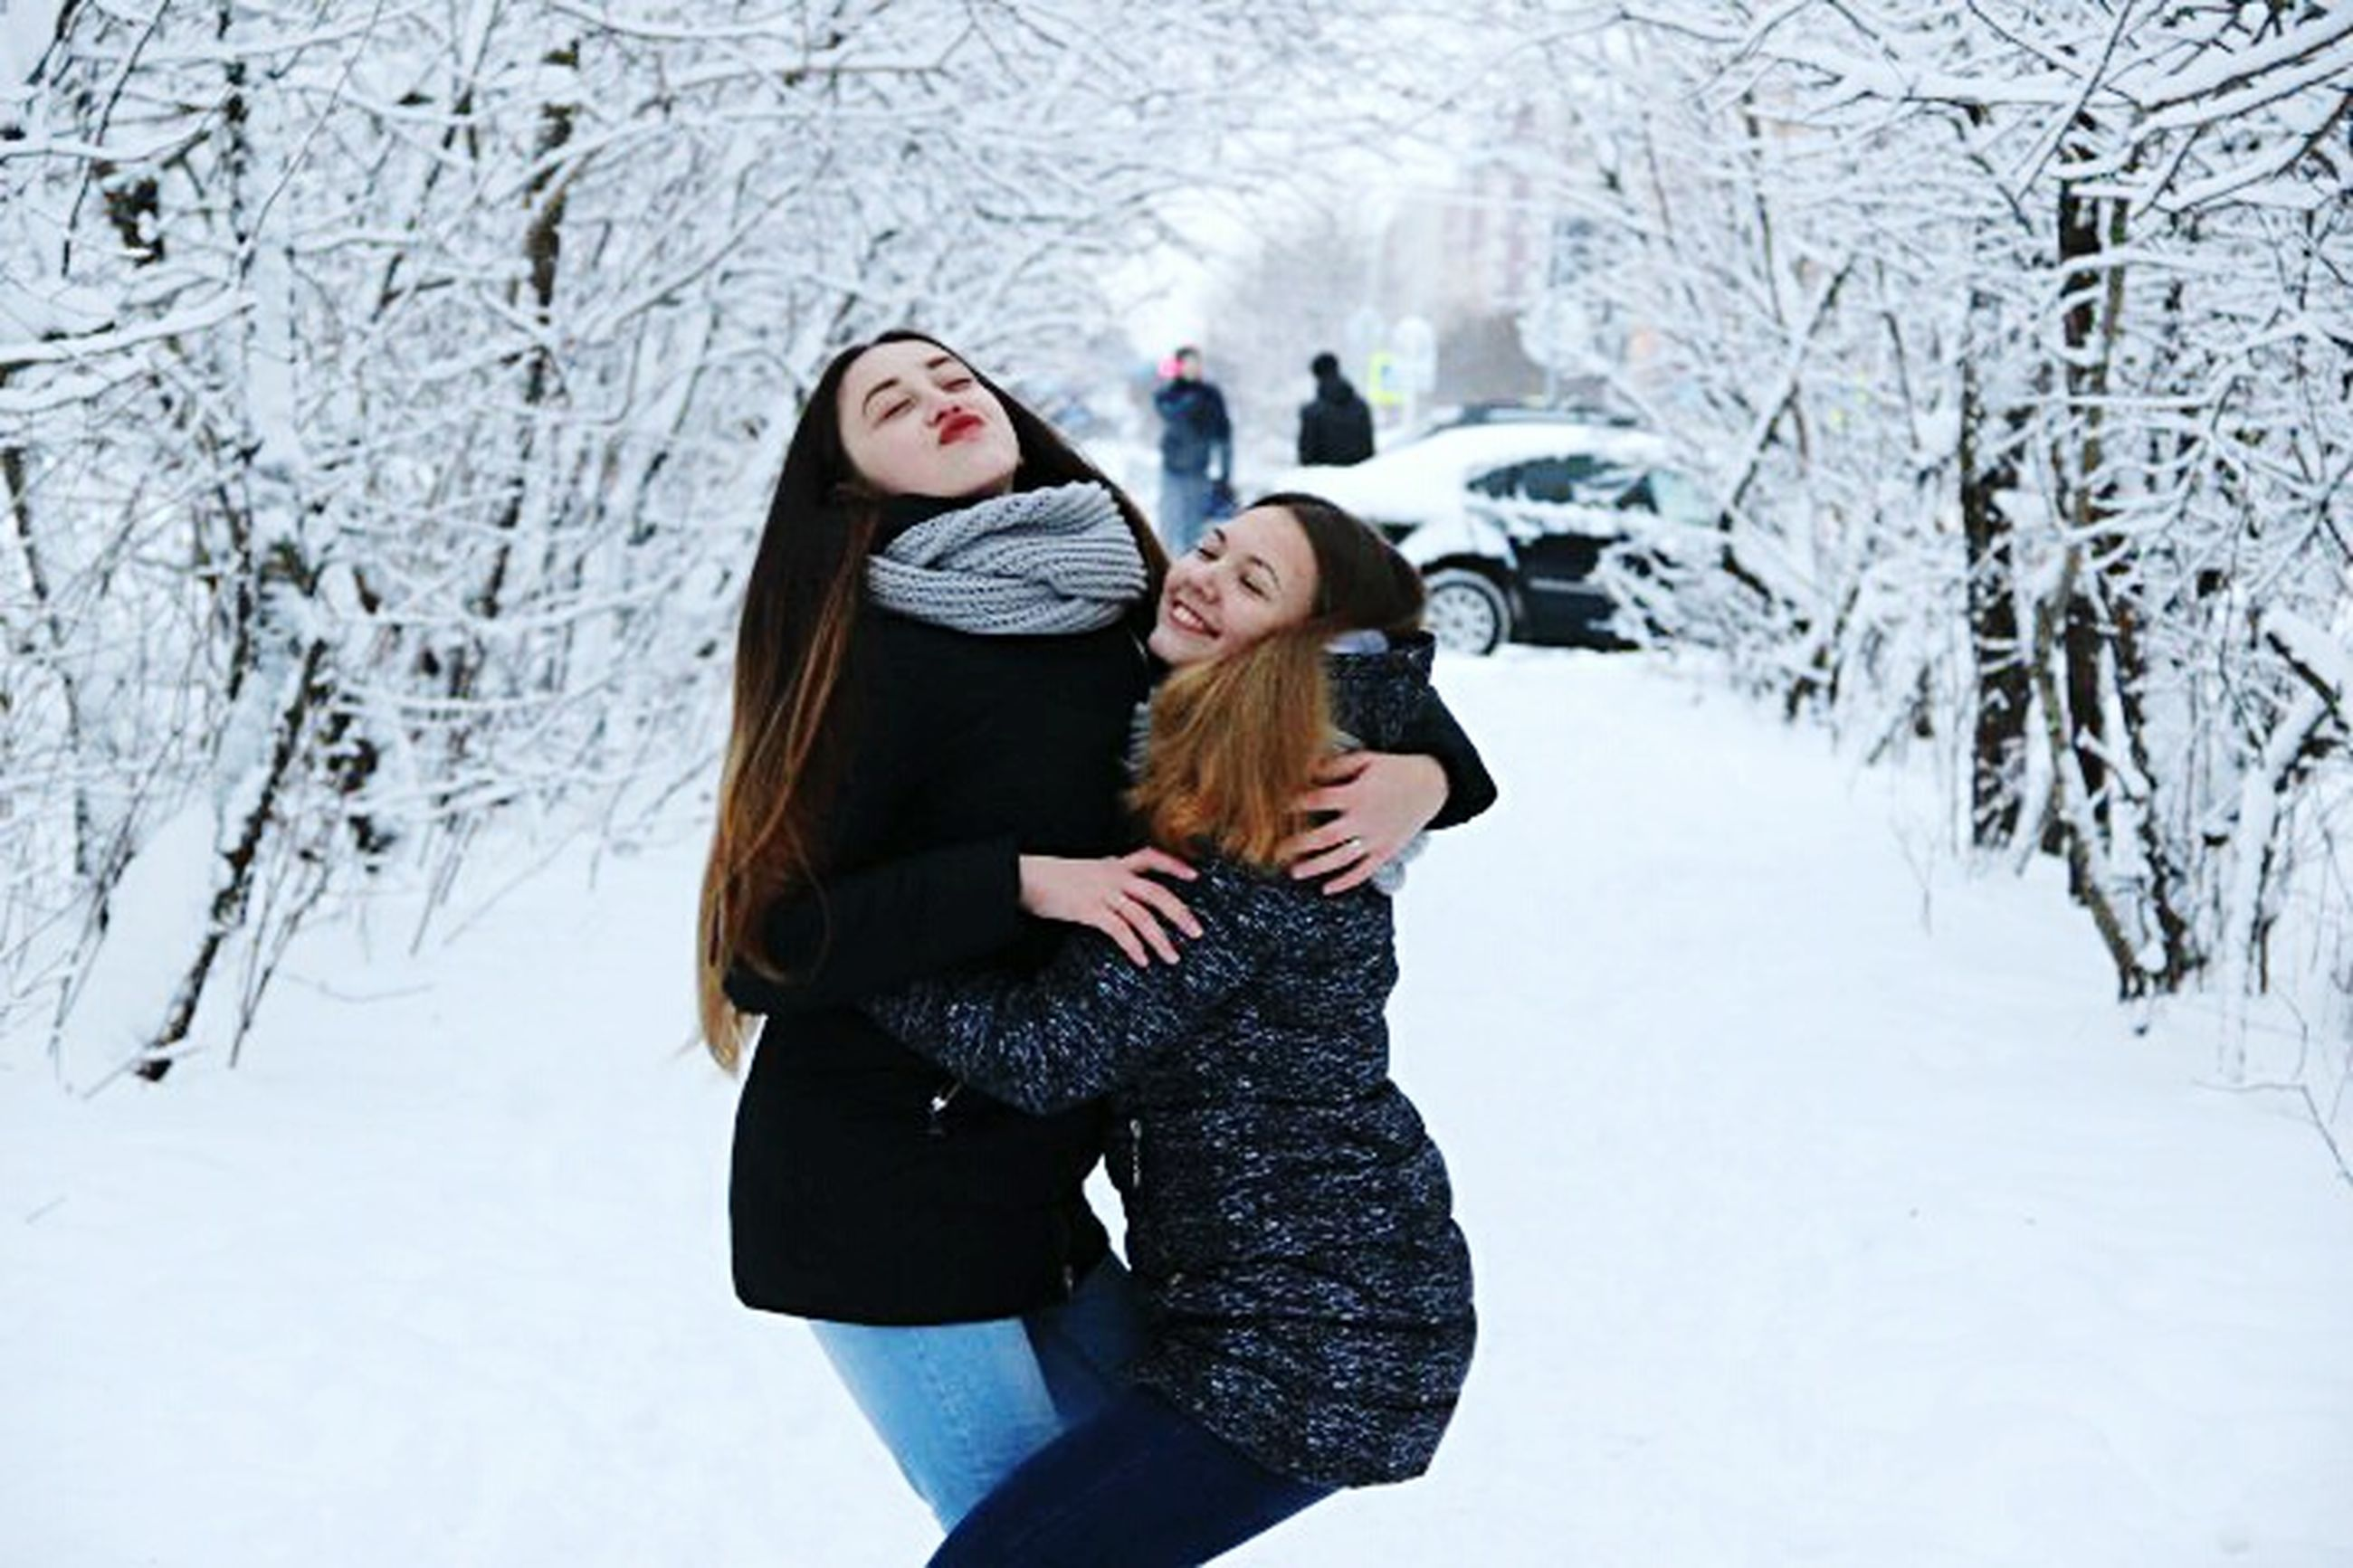 snow, winter, cold temperature, two people, friendship, young adult, long hair, bonding, warm clothing, leisure activity, togetherness, nature, fun, people, outdoors, happiness, young women, adult, vacations, smiling, day, adults only